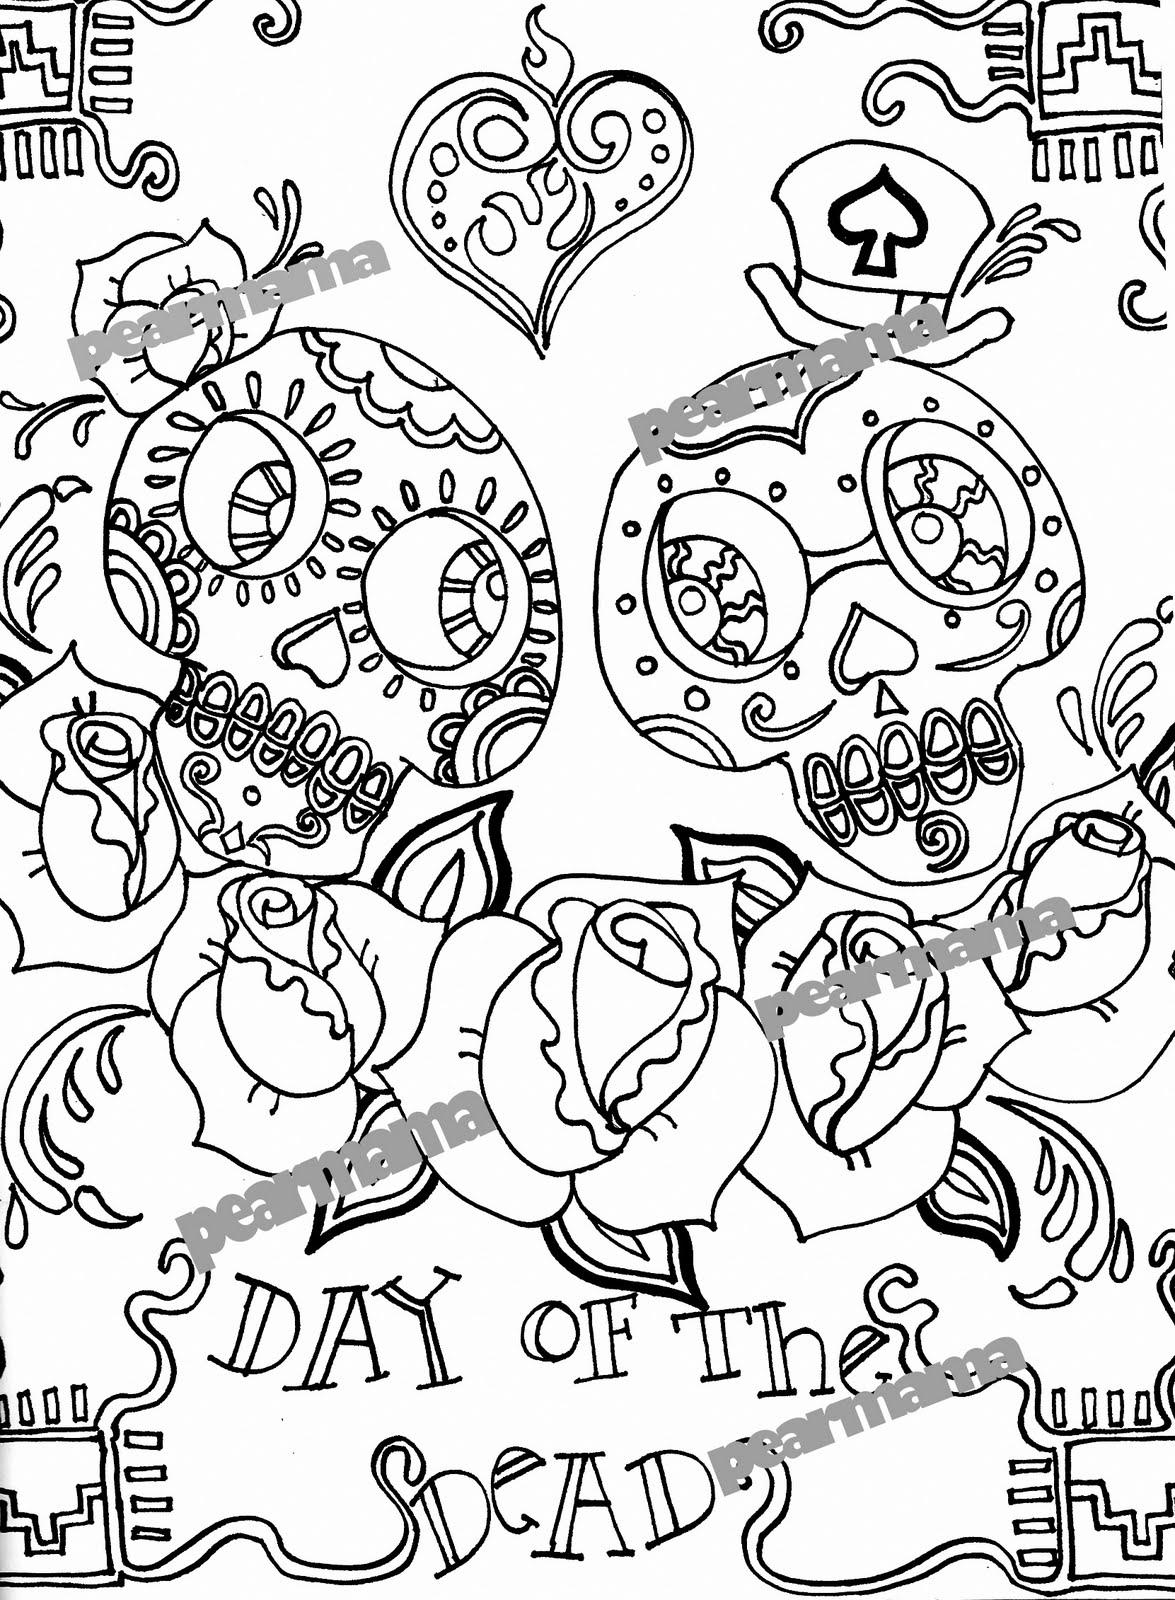 day of the dead coloring page free printable day of the dead coloring pages best coloring page day dead of the